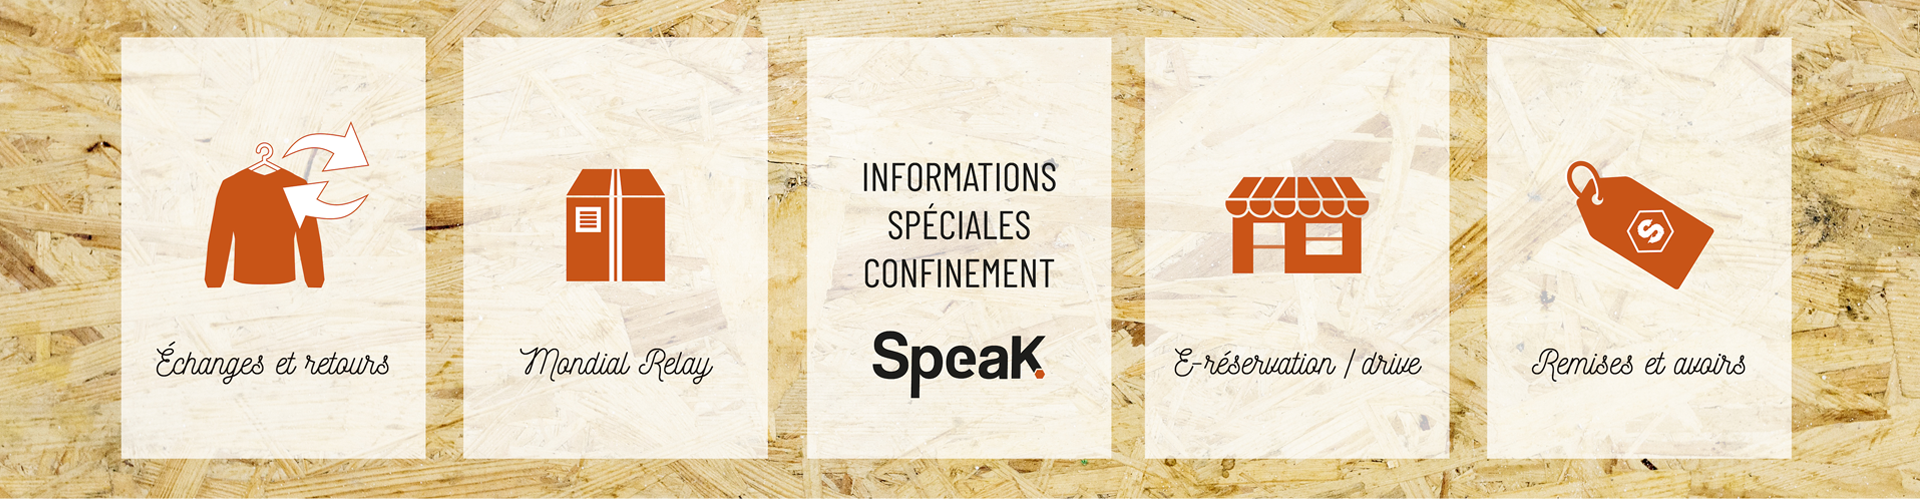 SPEAK - Information confinement